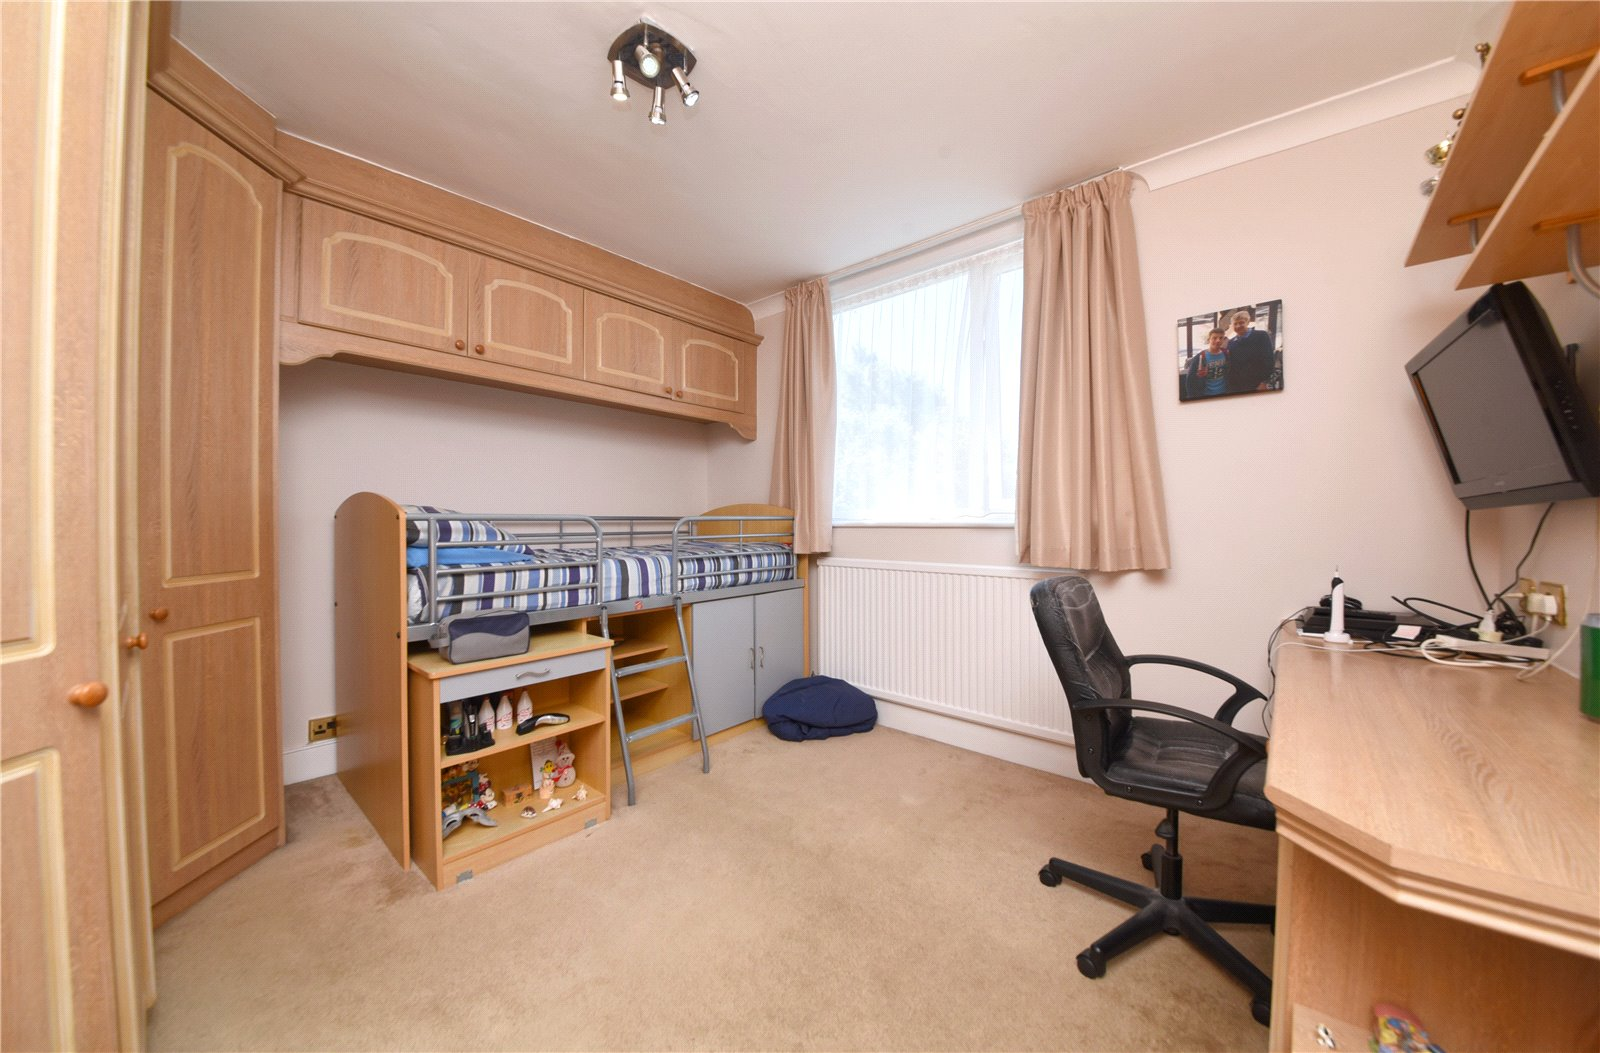 3 bed house for sale in Southgate, N14 4NY  - Property Image 9